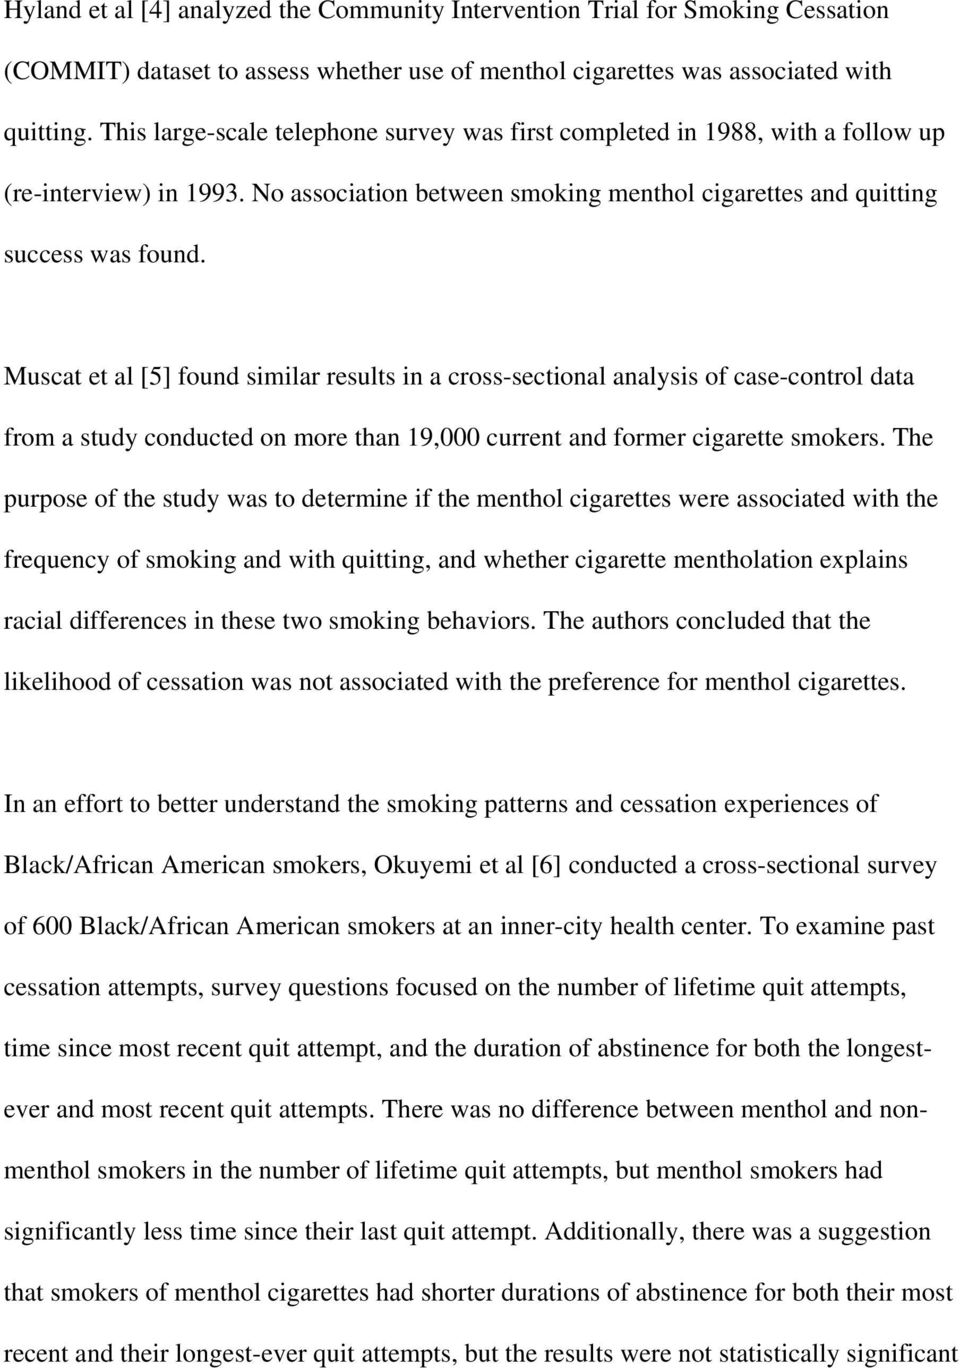 Muscat et al [5] found similar results in a cross-sectional analysis of case-control data from a study conducted on more than 19,000 current and former cigarette smokers.